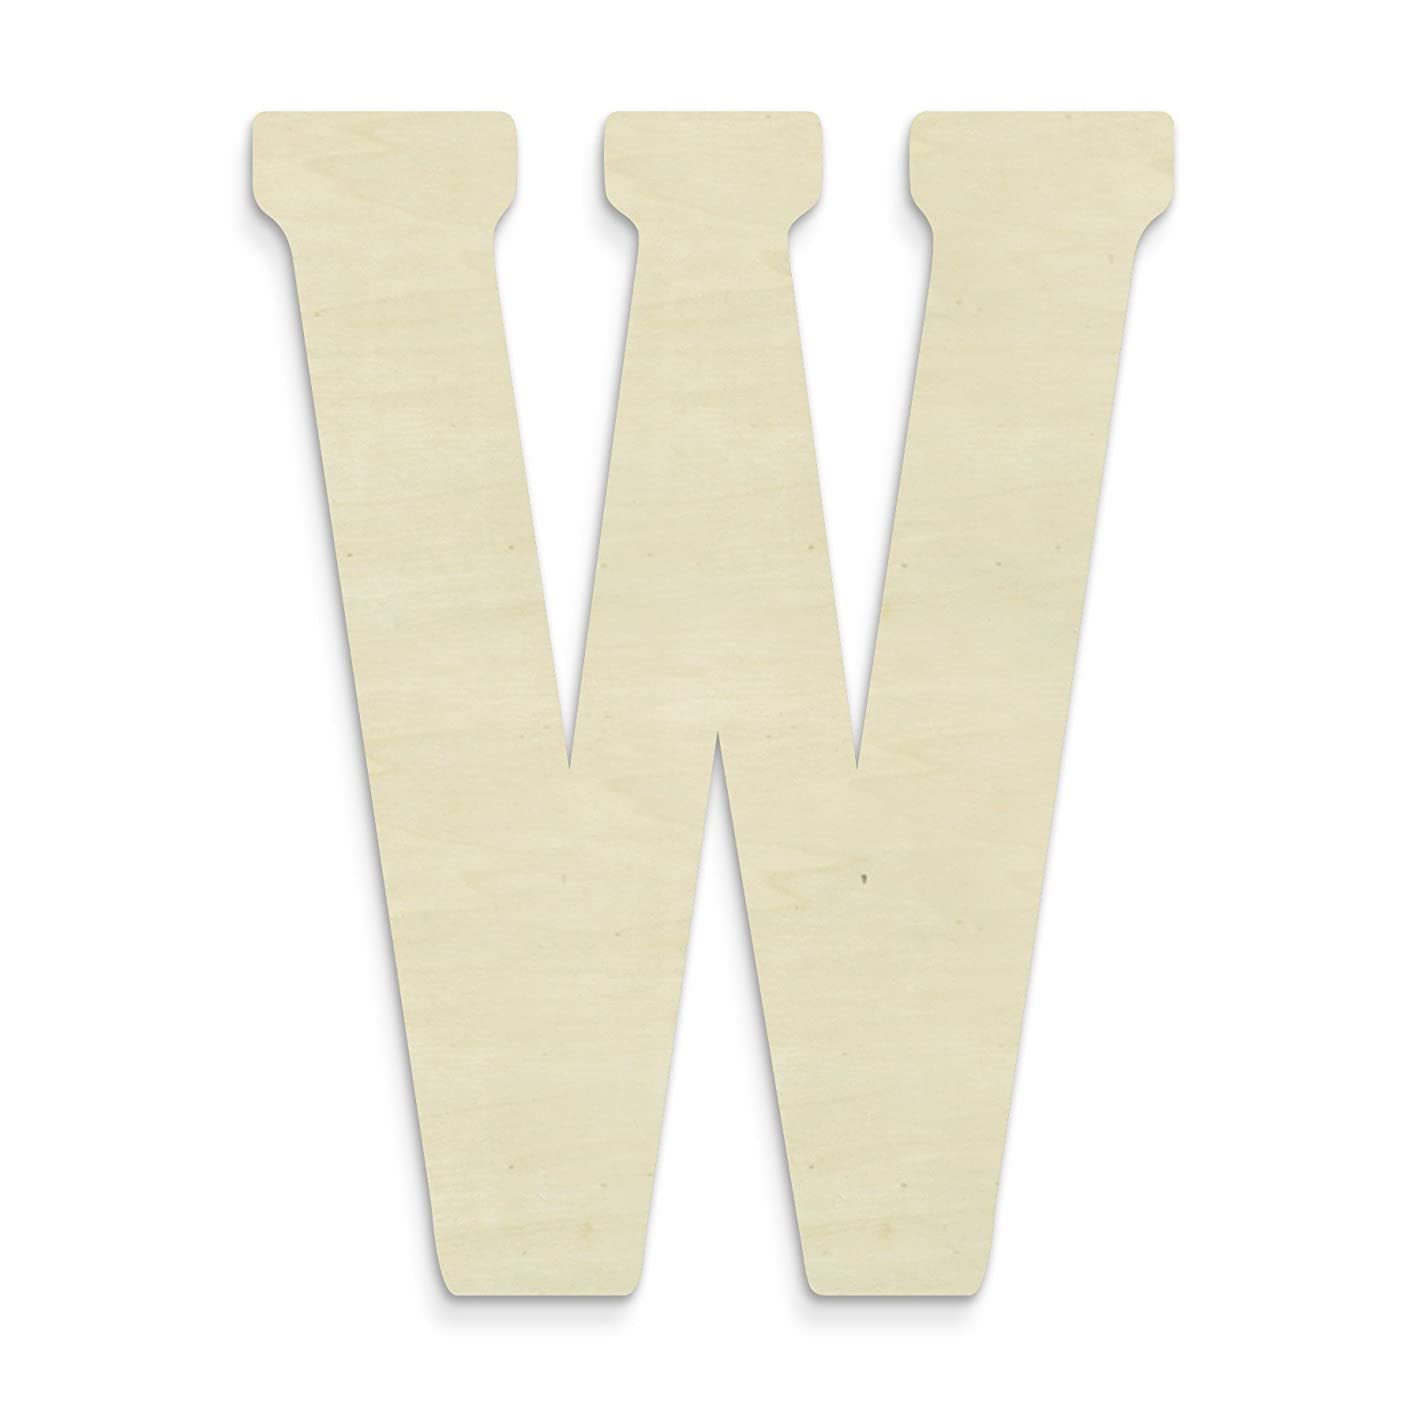 UNFINISHEDWOODCO 23-Inch Unfinished Wood Letter, Large, Letter W